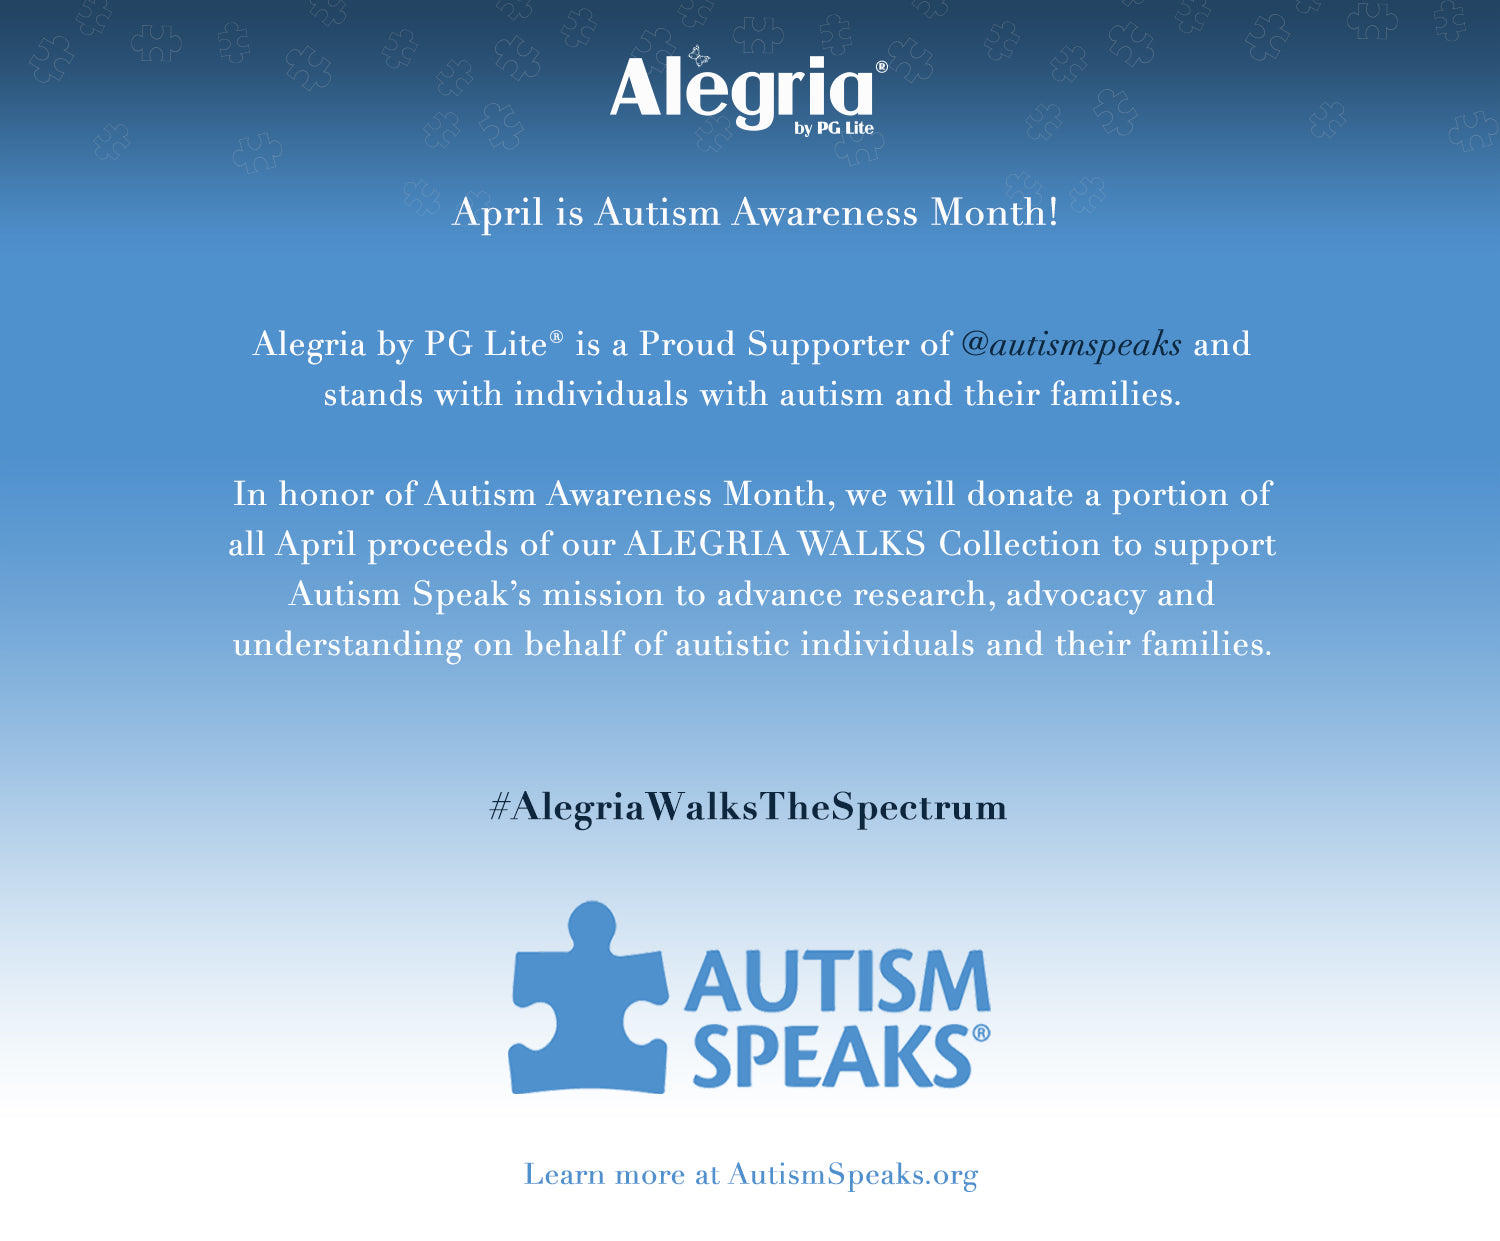 Autism Speaks Updates Their Mission >> Autism Awareness Month 2019 Alegria Shoes